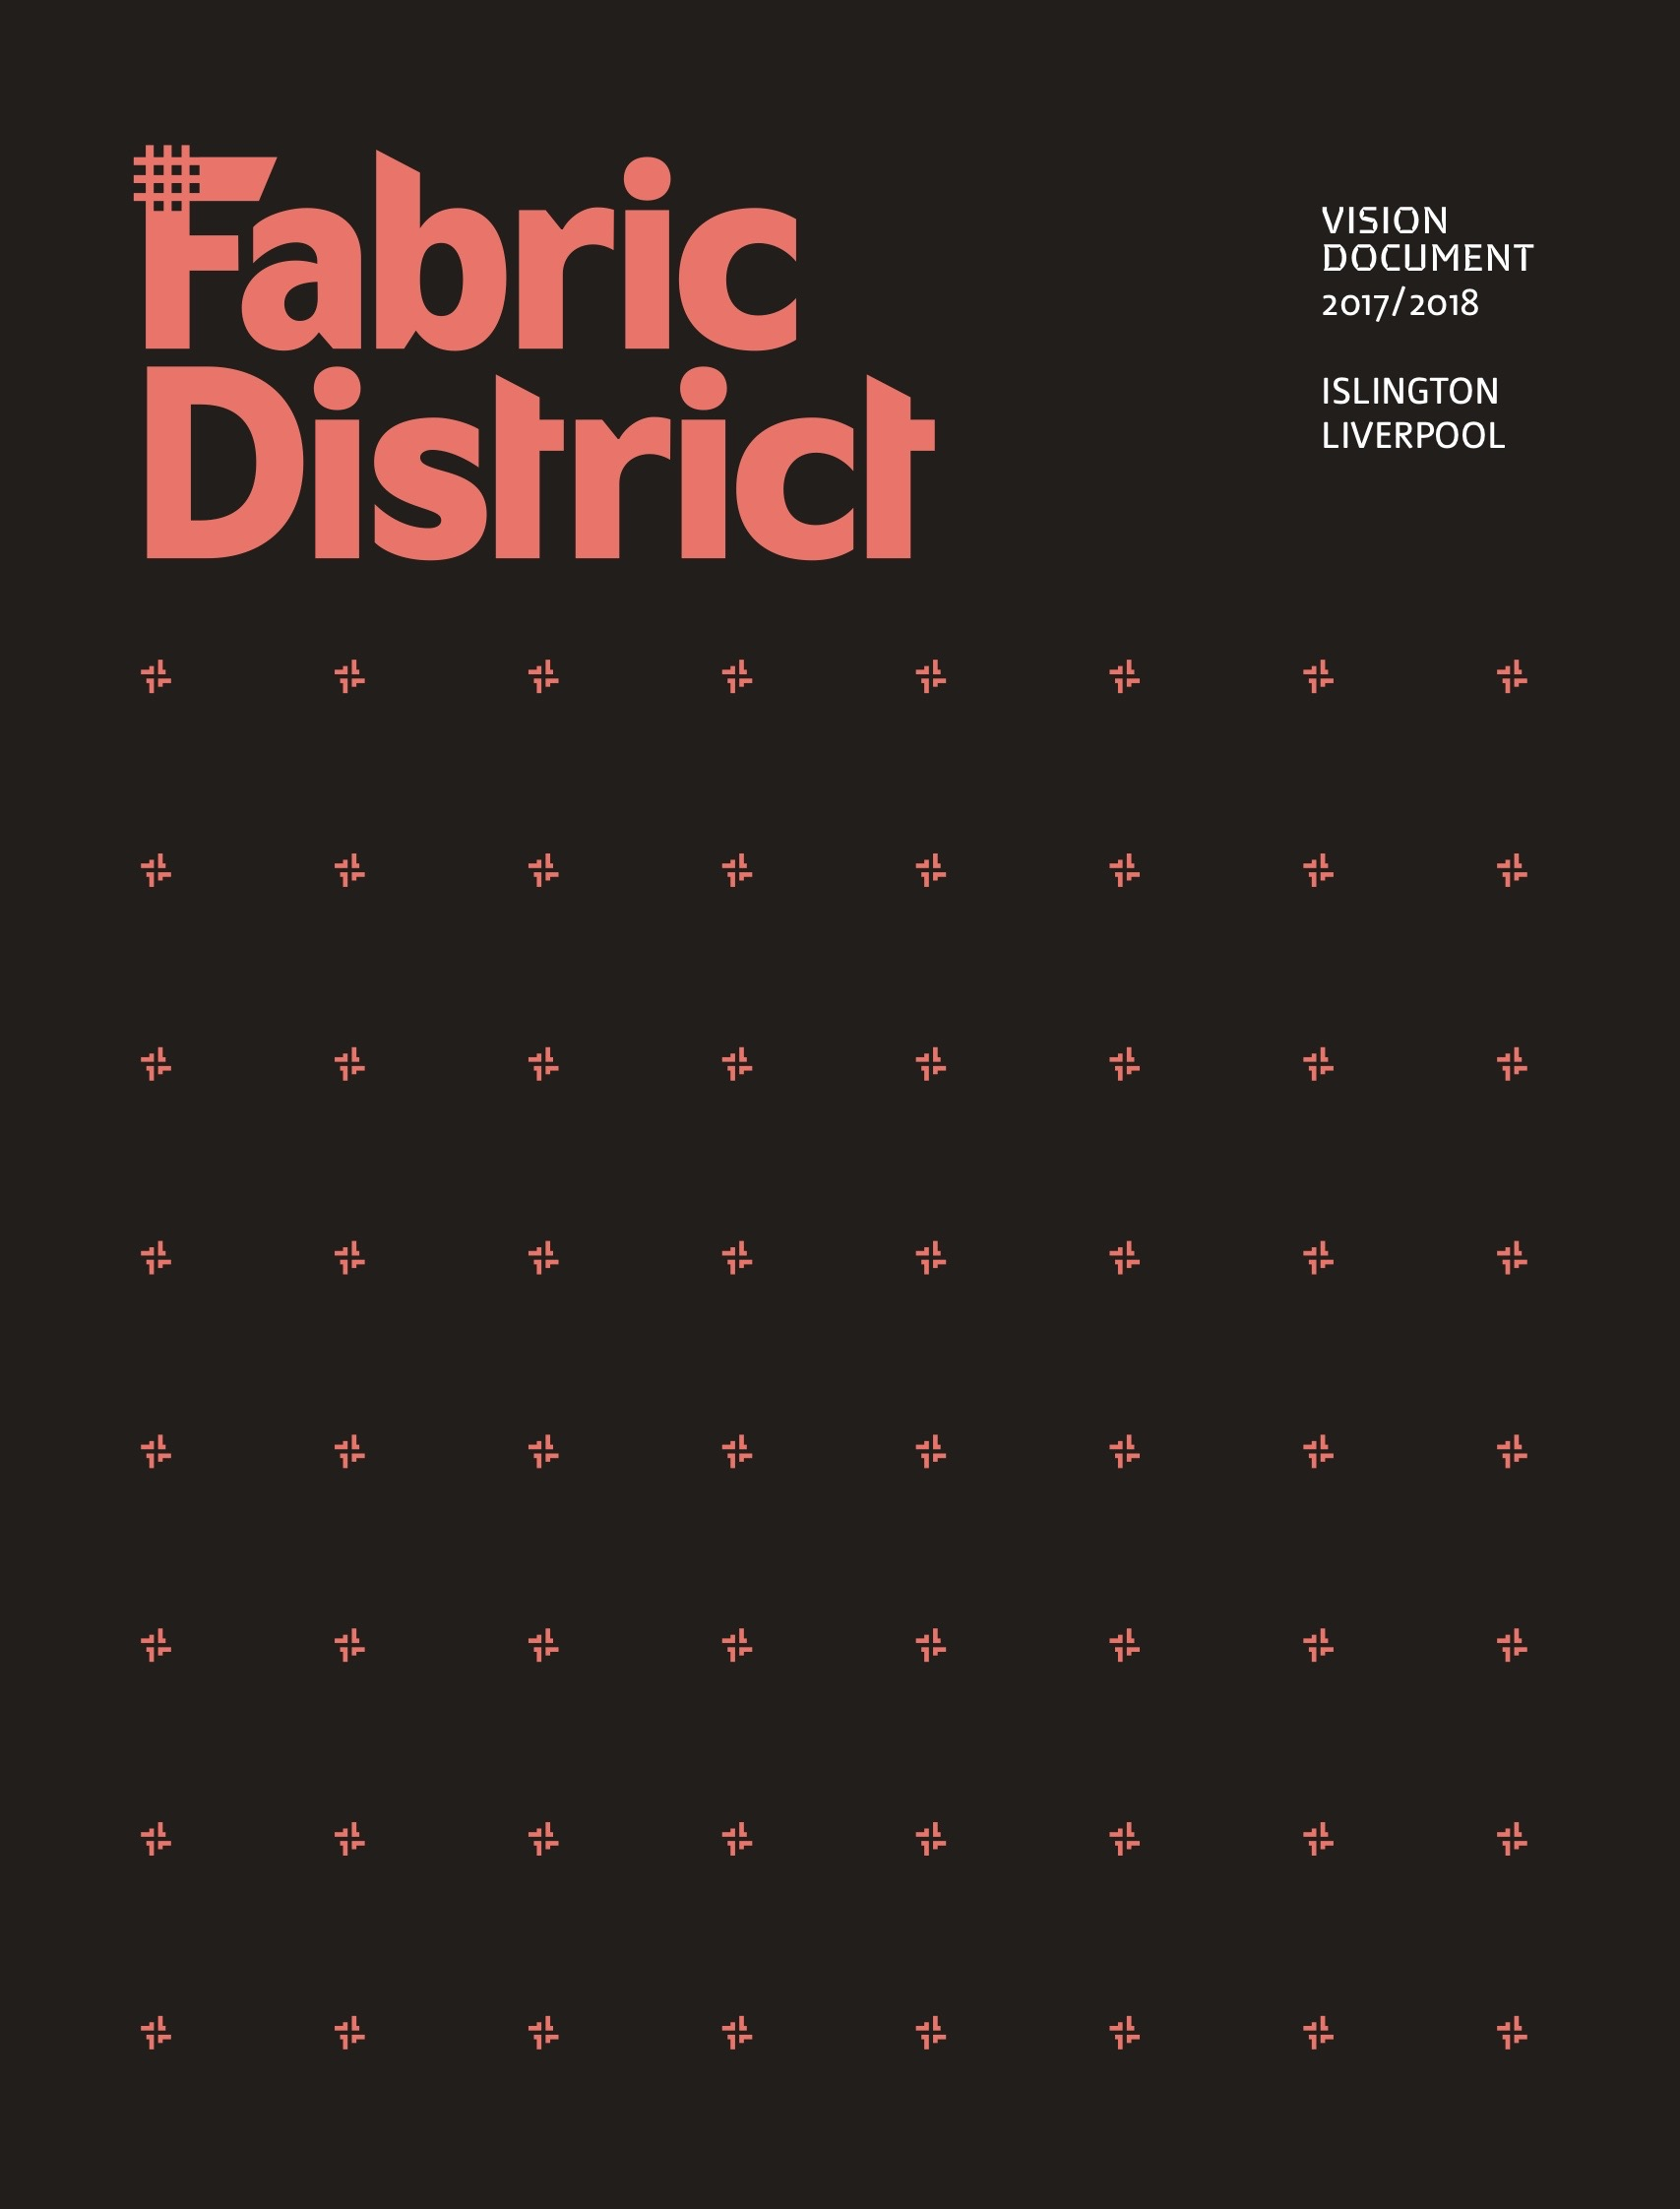 fabric_district_liverpool_vision_document